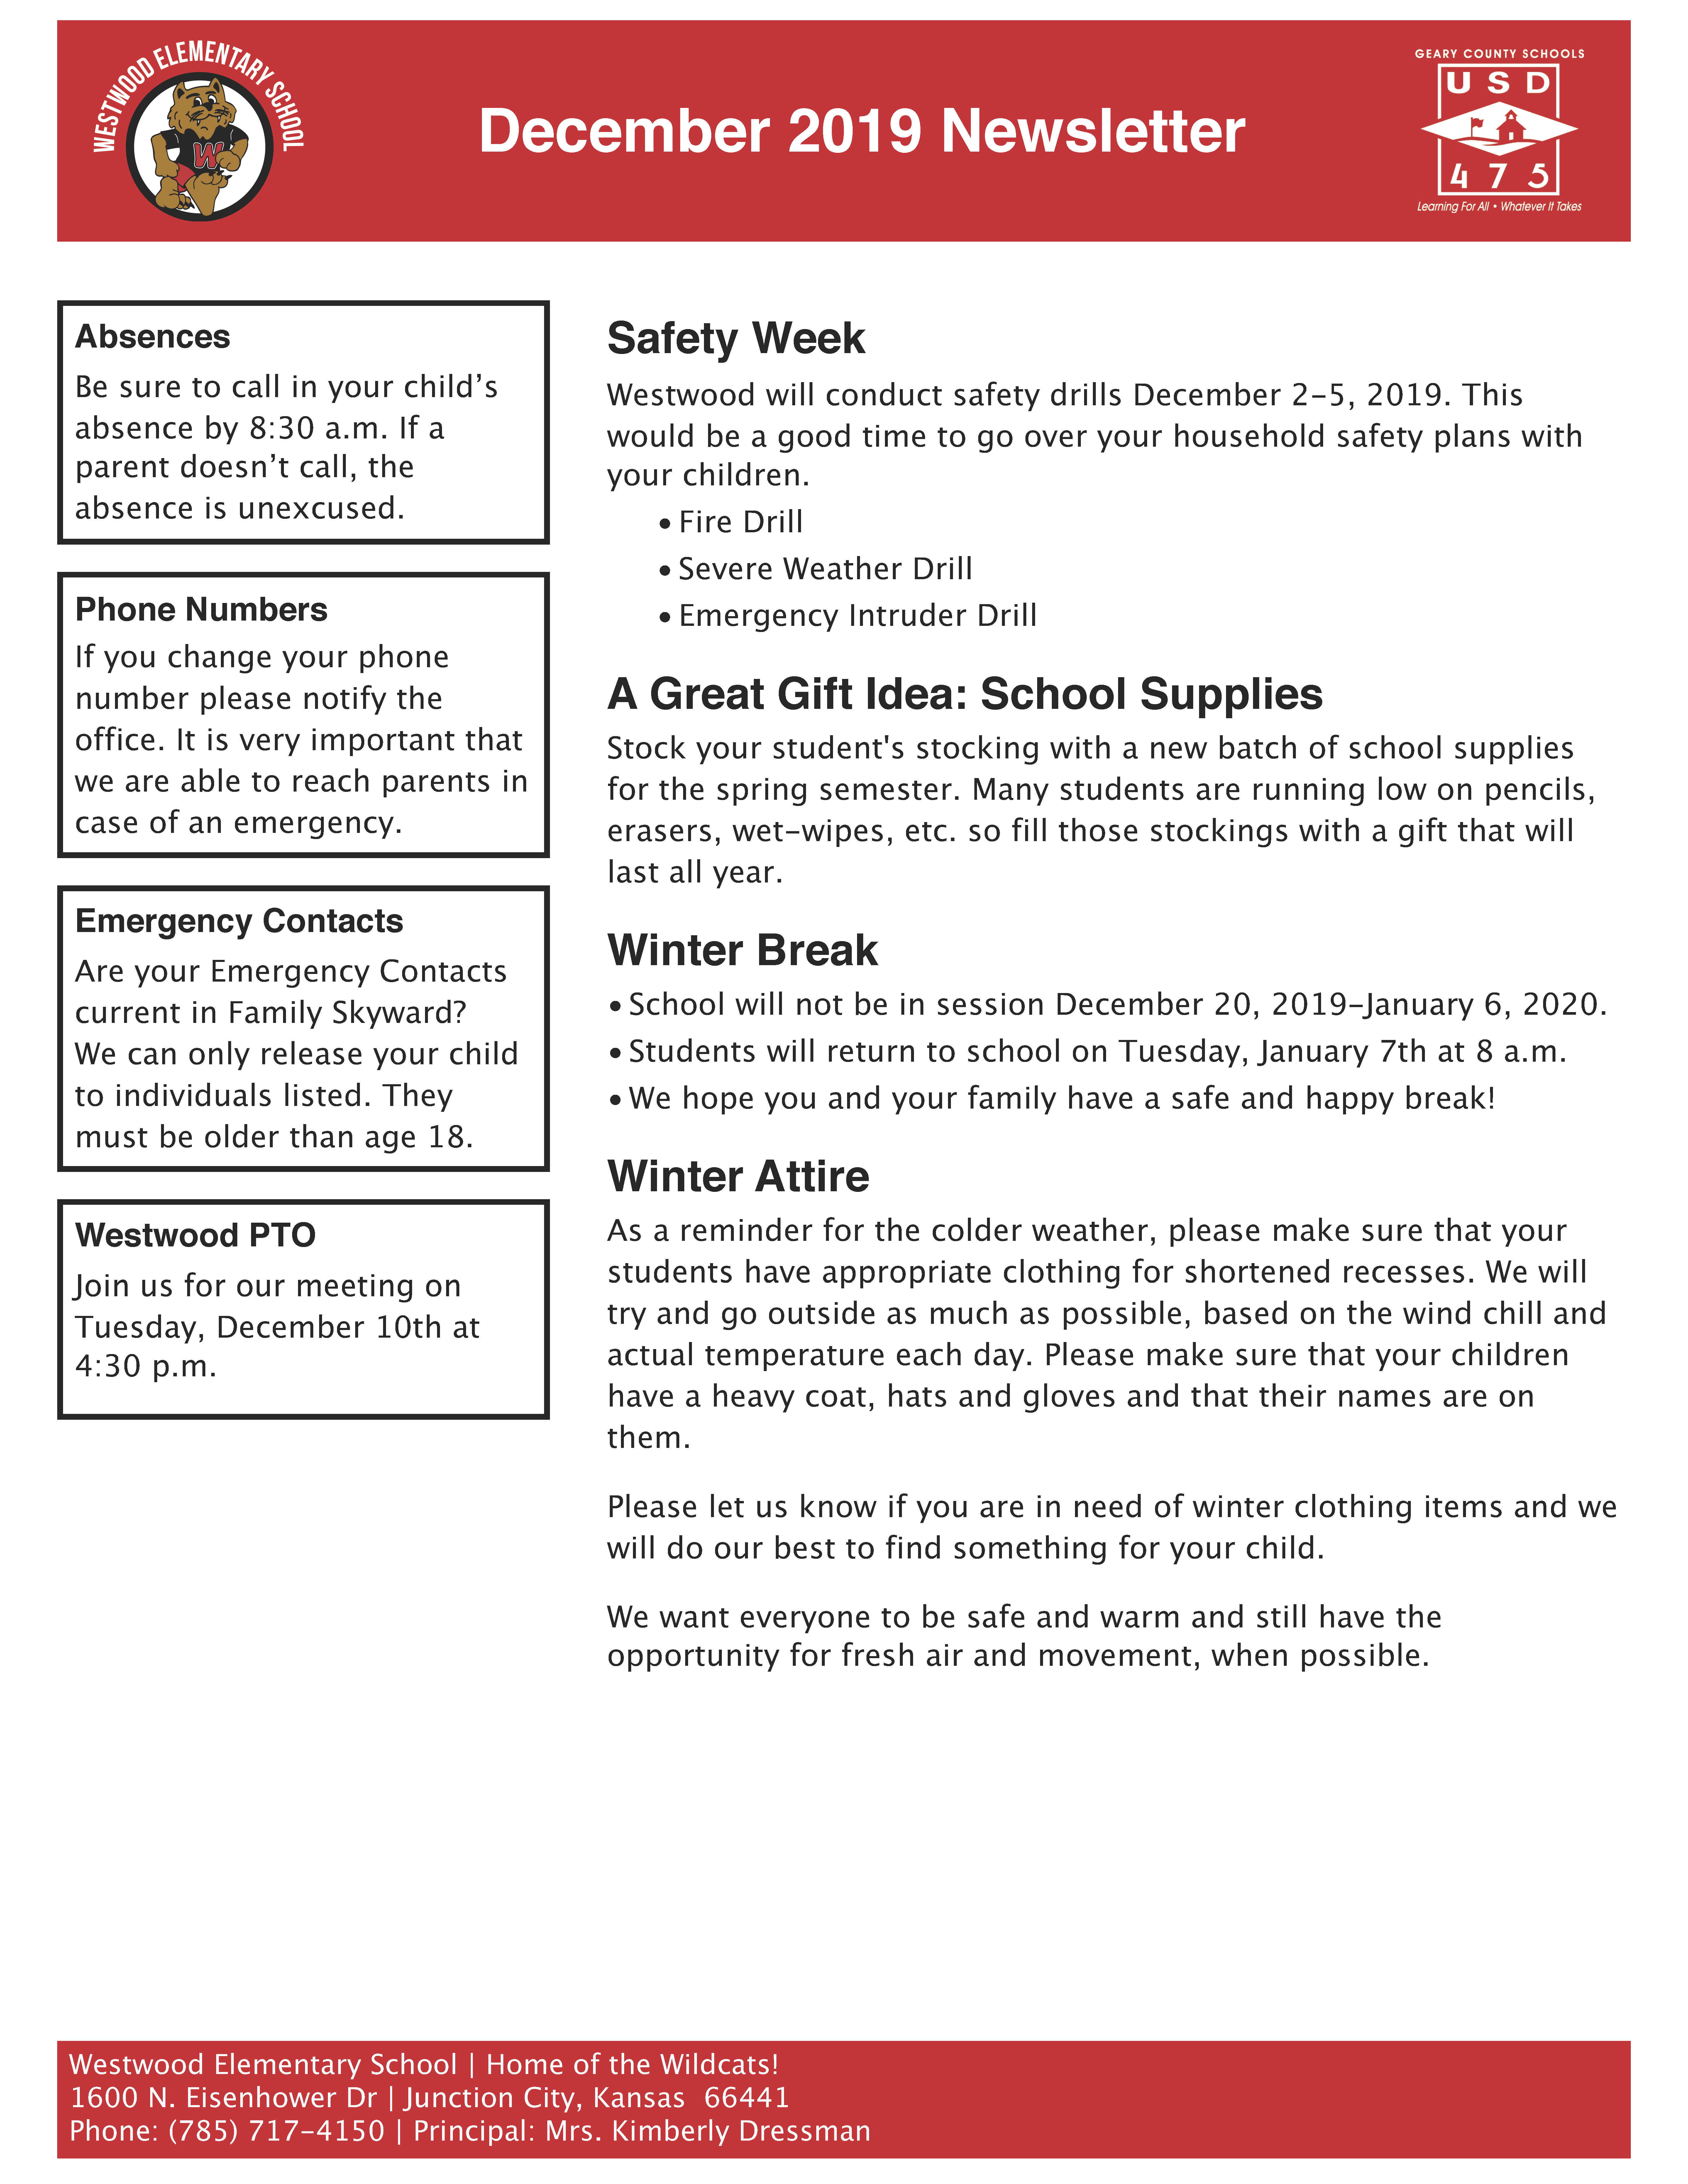 Image of Westwood Elementary's December 2019 Newsletter